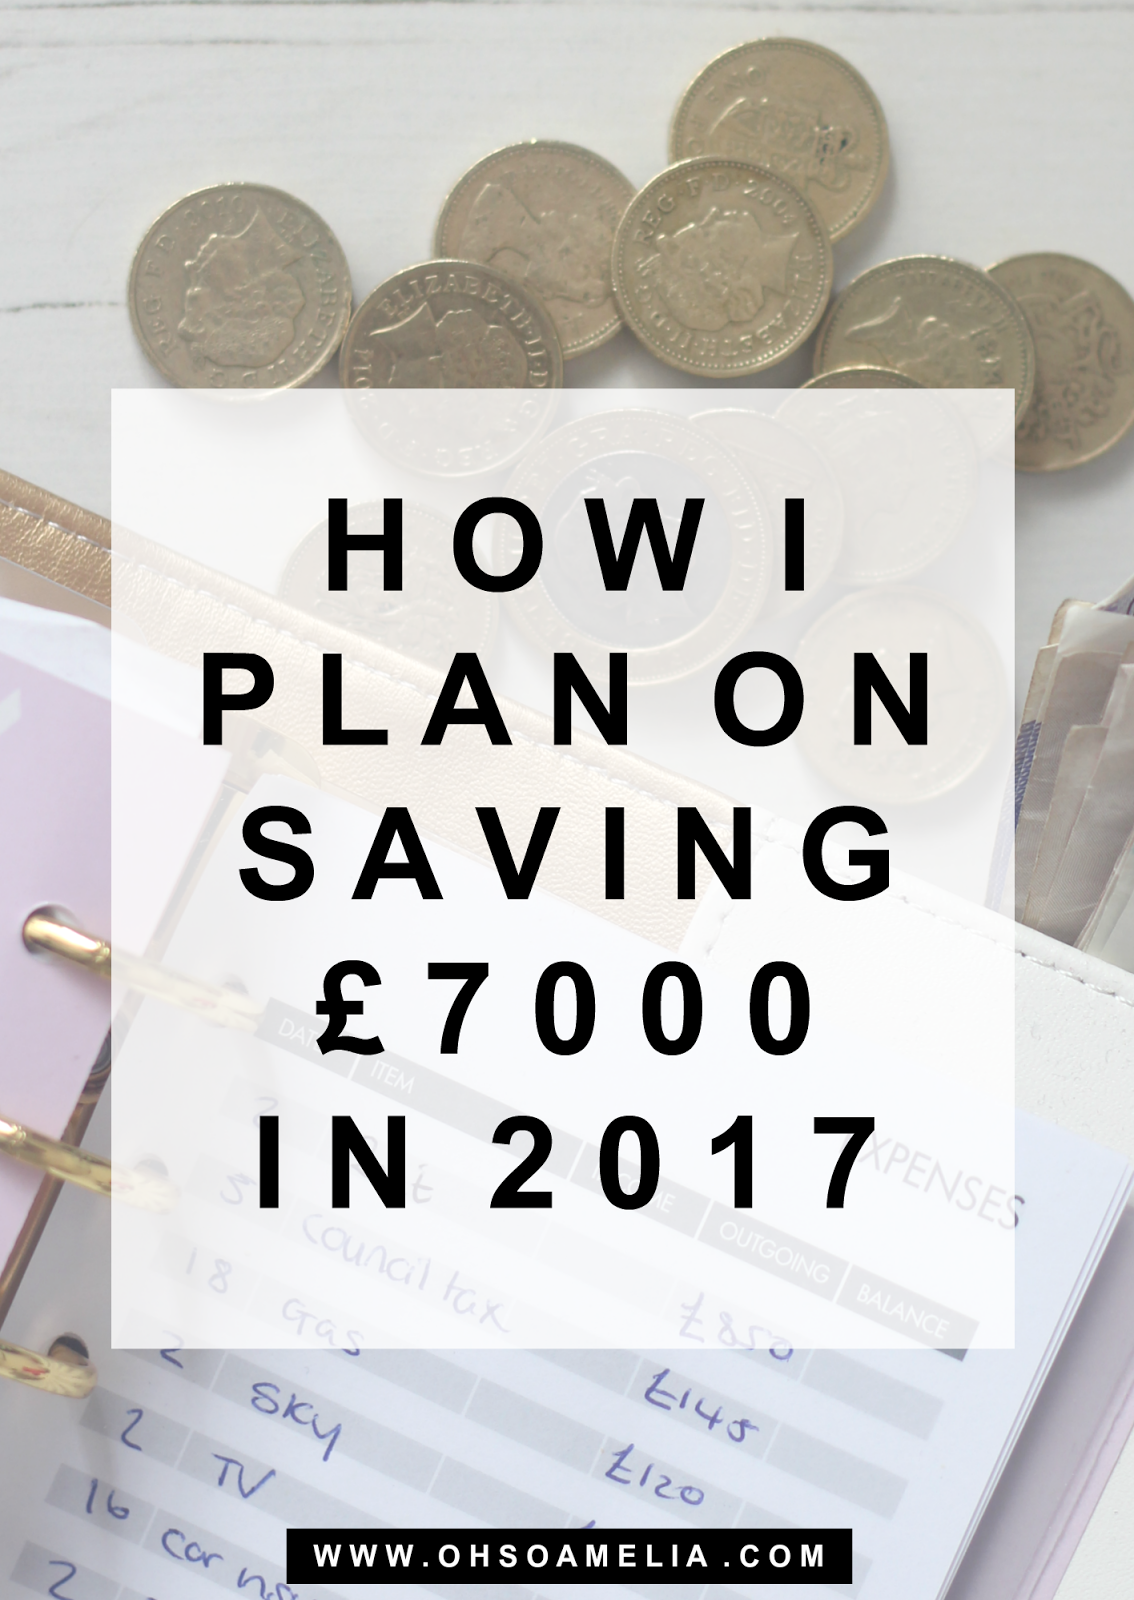 How I plan on saving £7000 in 2017